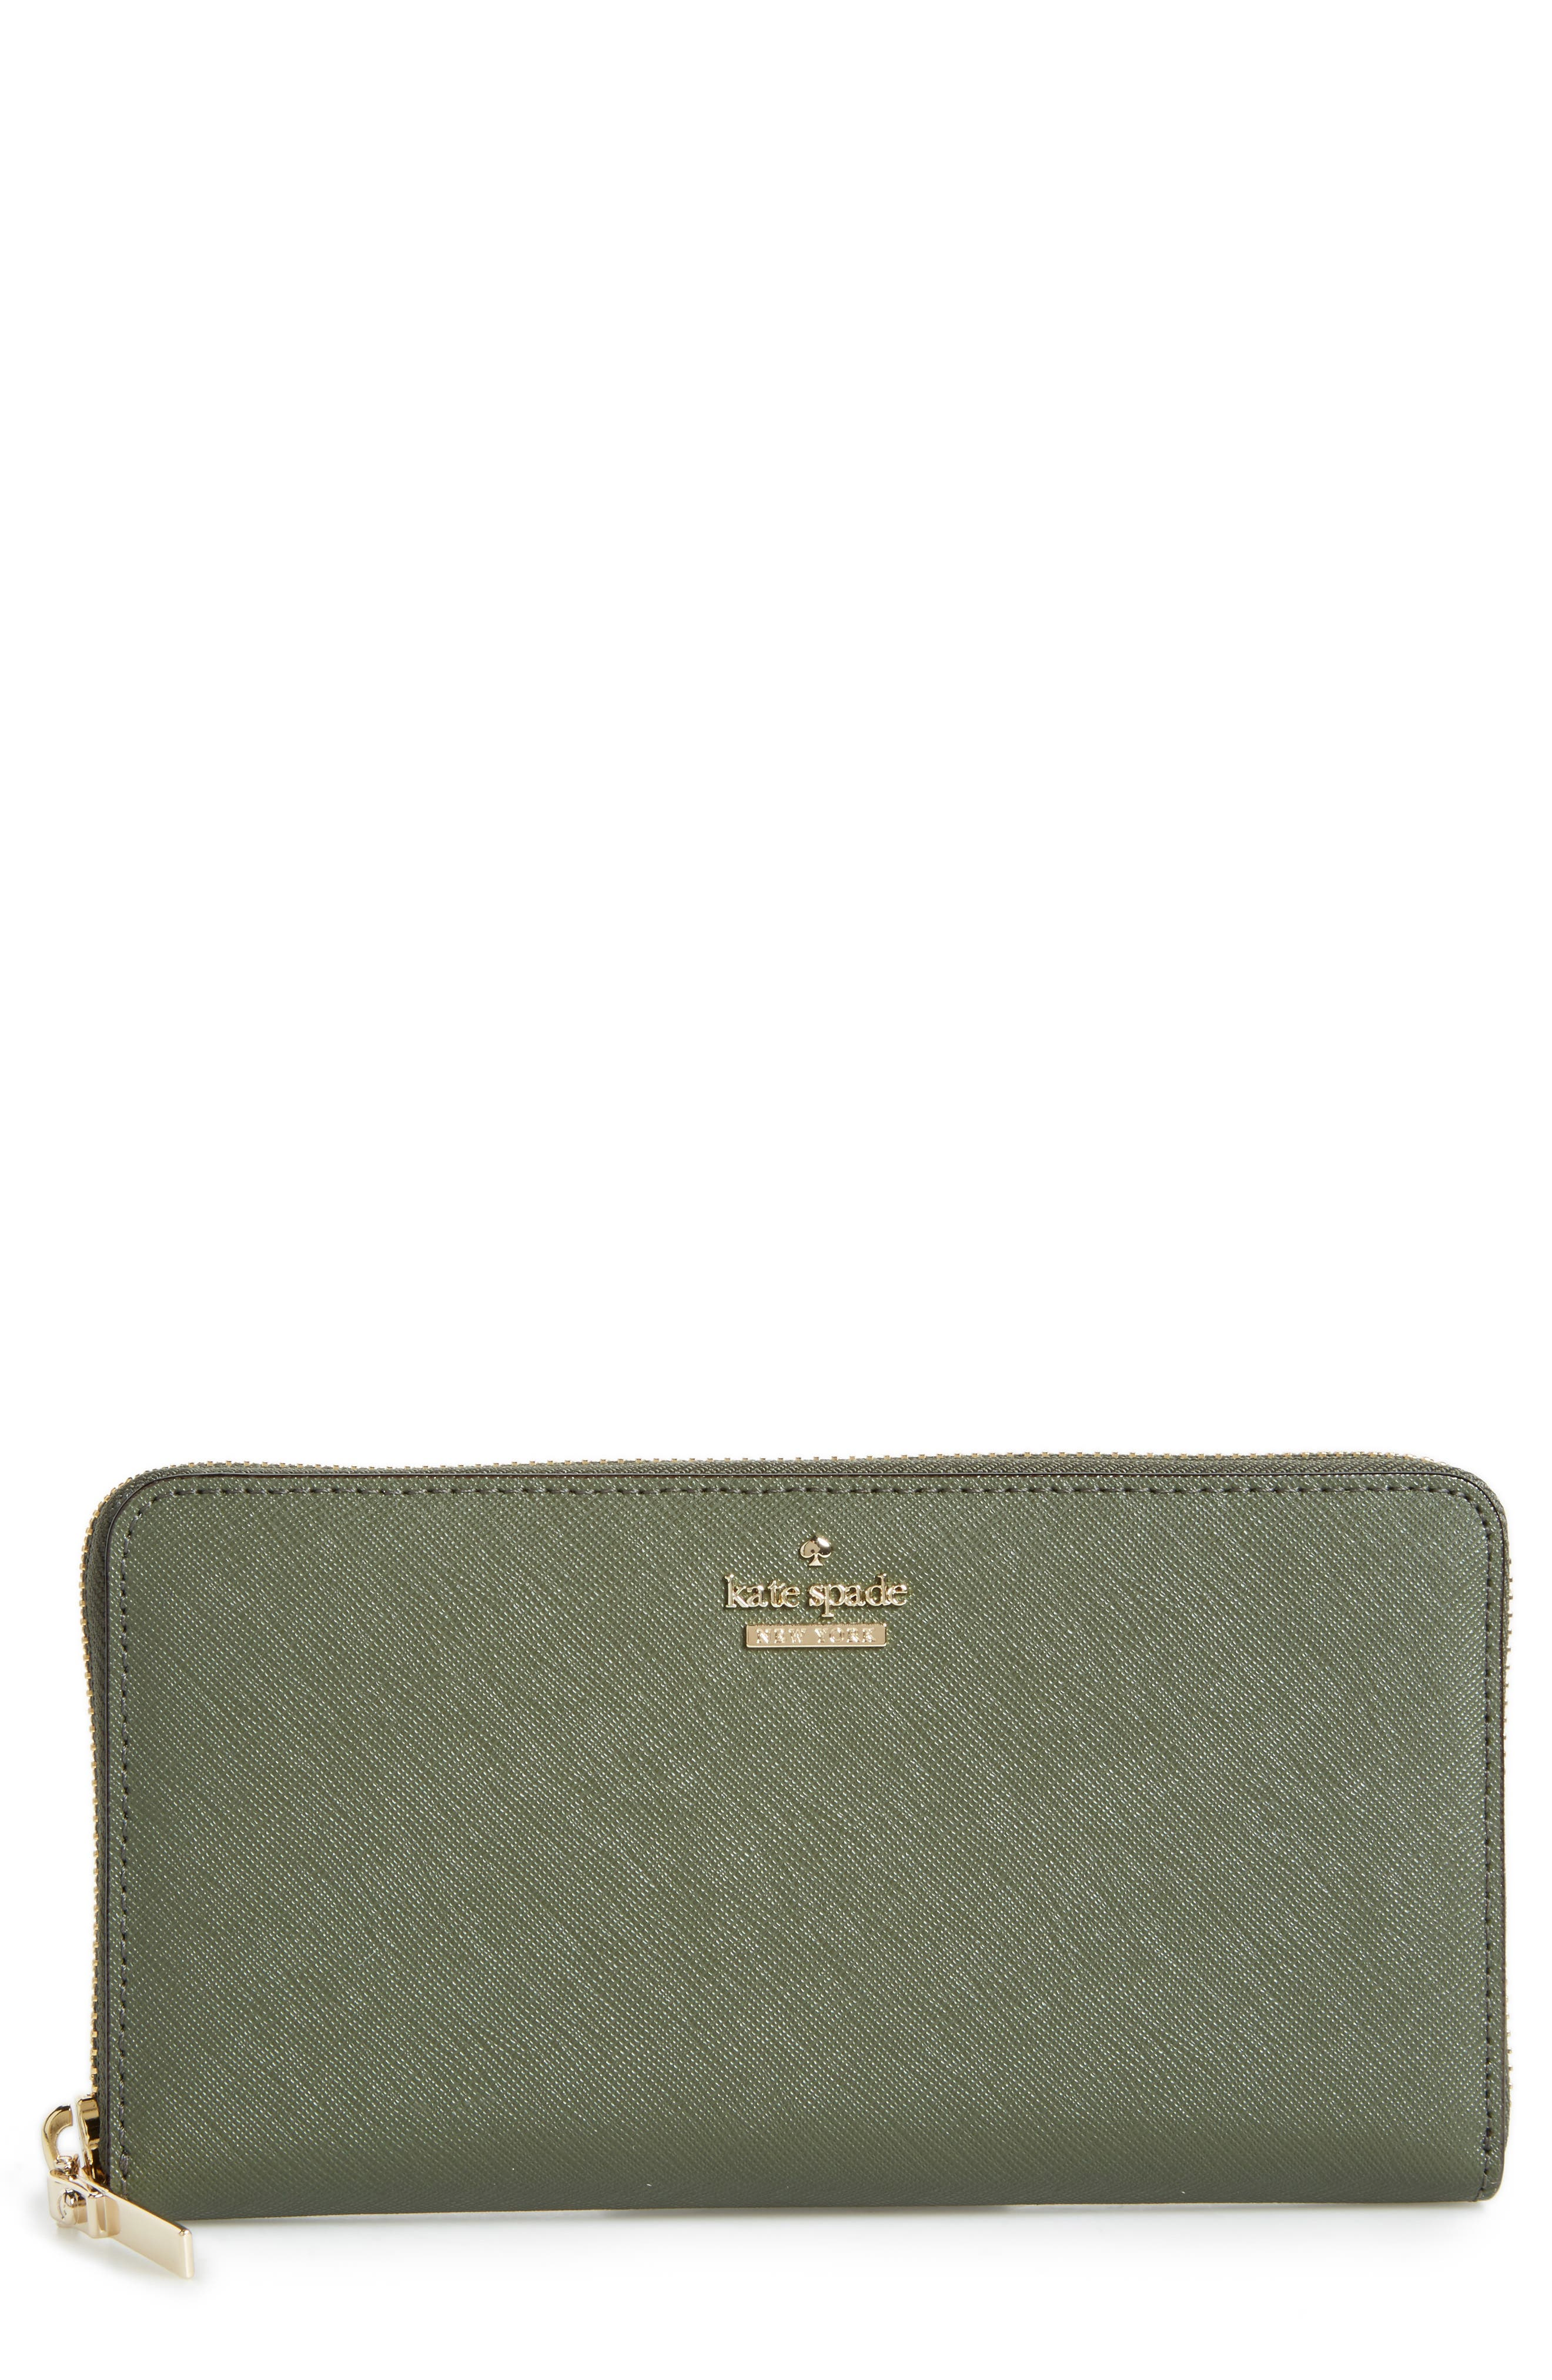 'cameron street - lacey' leather wallet,                             Main thumbnail 1, color,